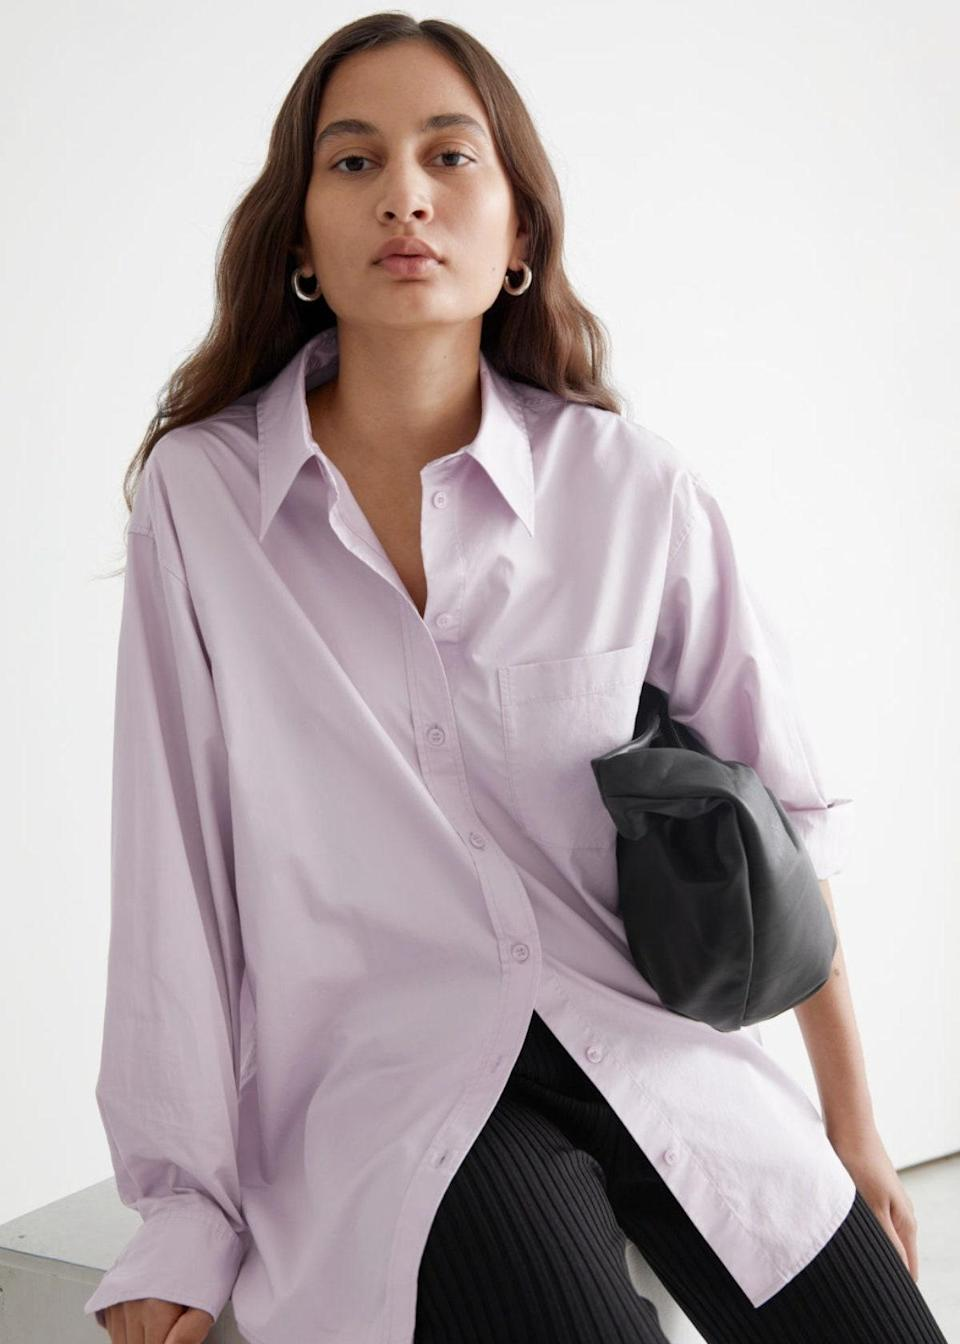 """Lilac plus black is the fall color palette you didn't know you needed…until now. $89, & Other Stories. <a href=""""https://www.stories.com/en_usd/clothing/blouses-shirts/shirts/product.voluminous-cotton-shirt-purple.0988078003.html"""" rel=""""nofollow noopener"""" target=""""_blank"""" data-ylk=""""slk:Get it now!"""" class=""""link rapid-noclick-resp"""">Get it now!</a>"""